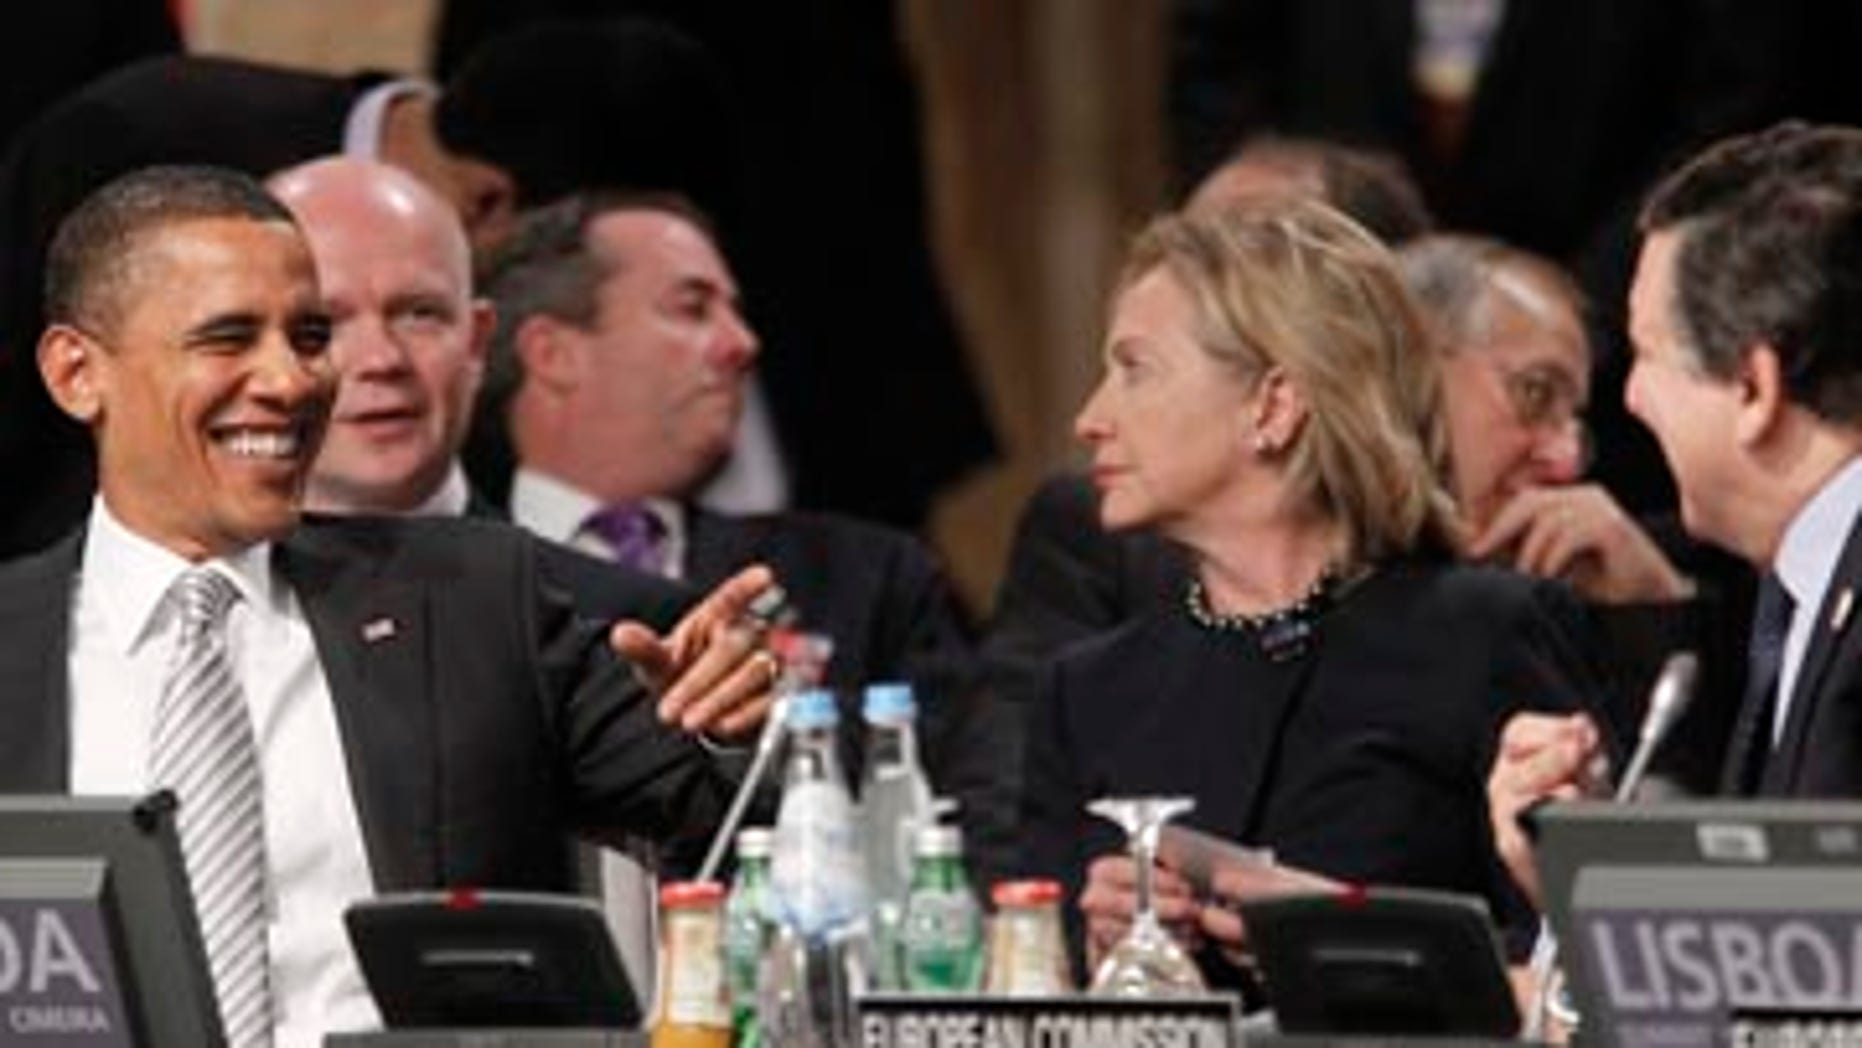 Saturday: Secretary of State Hillary Clinton and President Obama at the Afghanistan Opening Session at the NATO Summit in Lisbon, Portugal.